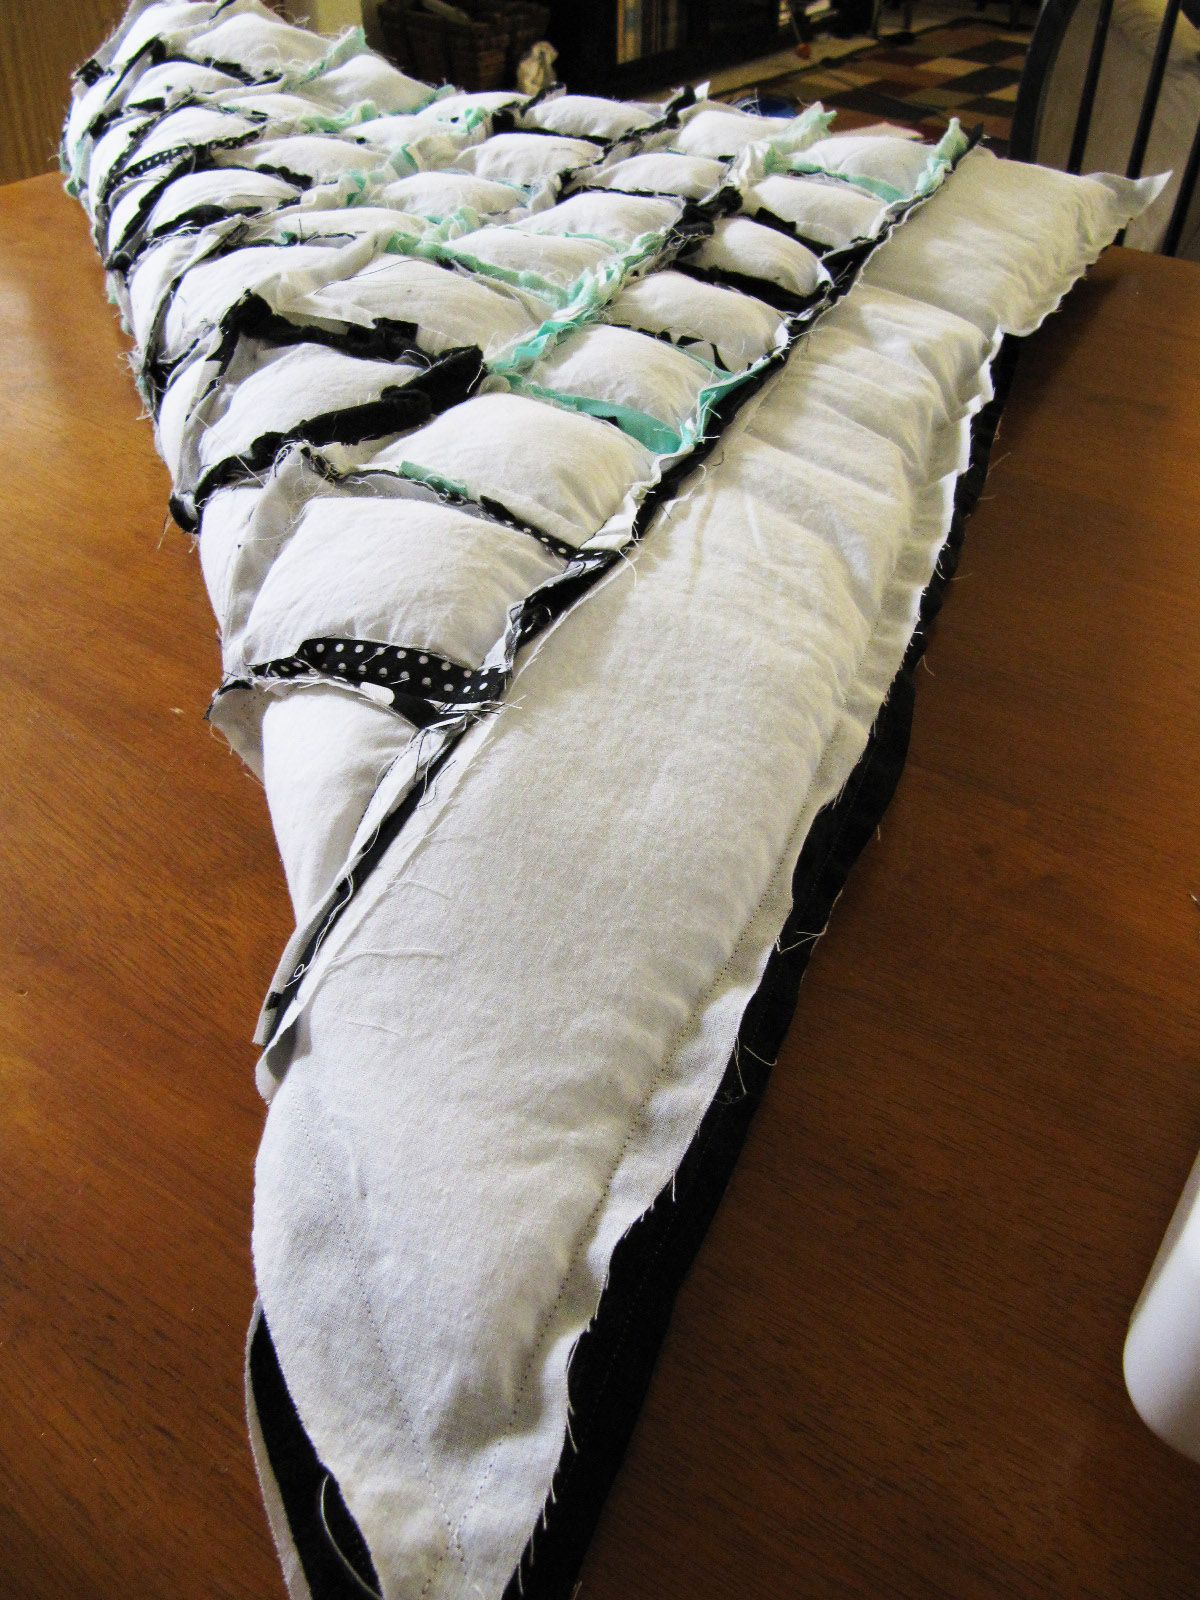 Pin by vicki greenberg on pillow (With